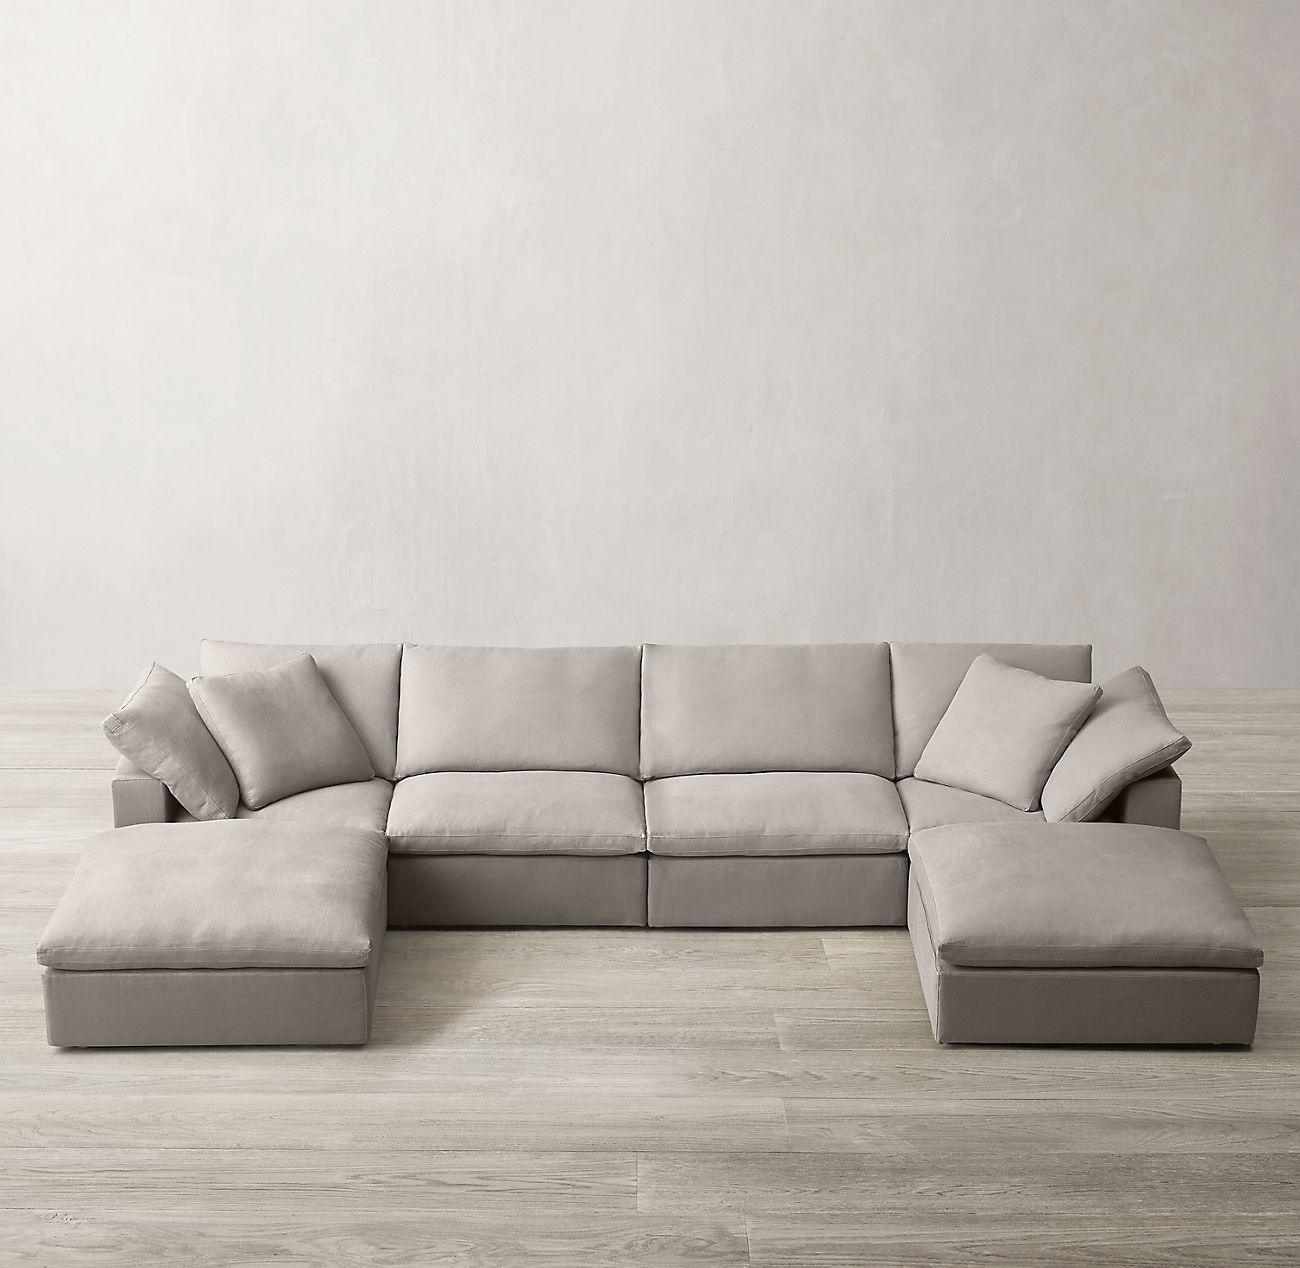 Cloud Modular Customizable Sectional Sectional Sofa Comfy Comfy Sectional Couches Living Room